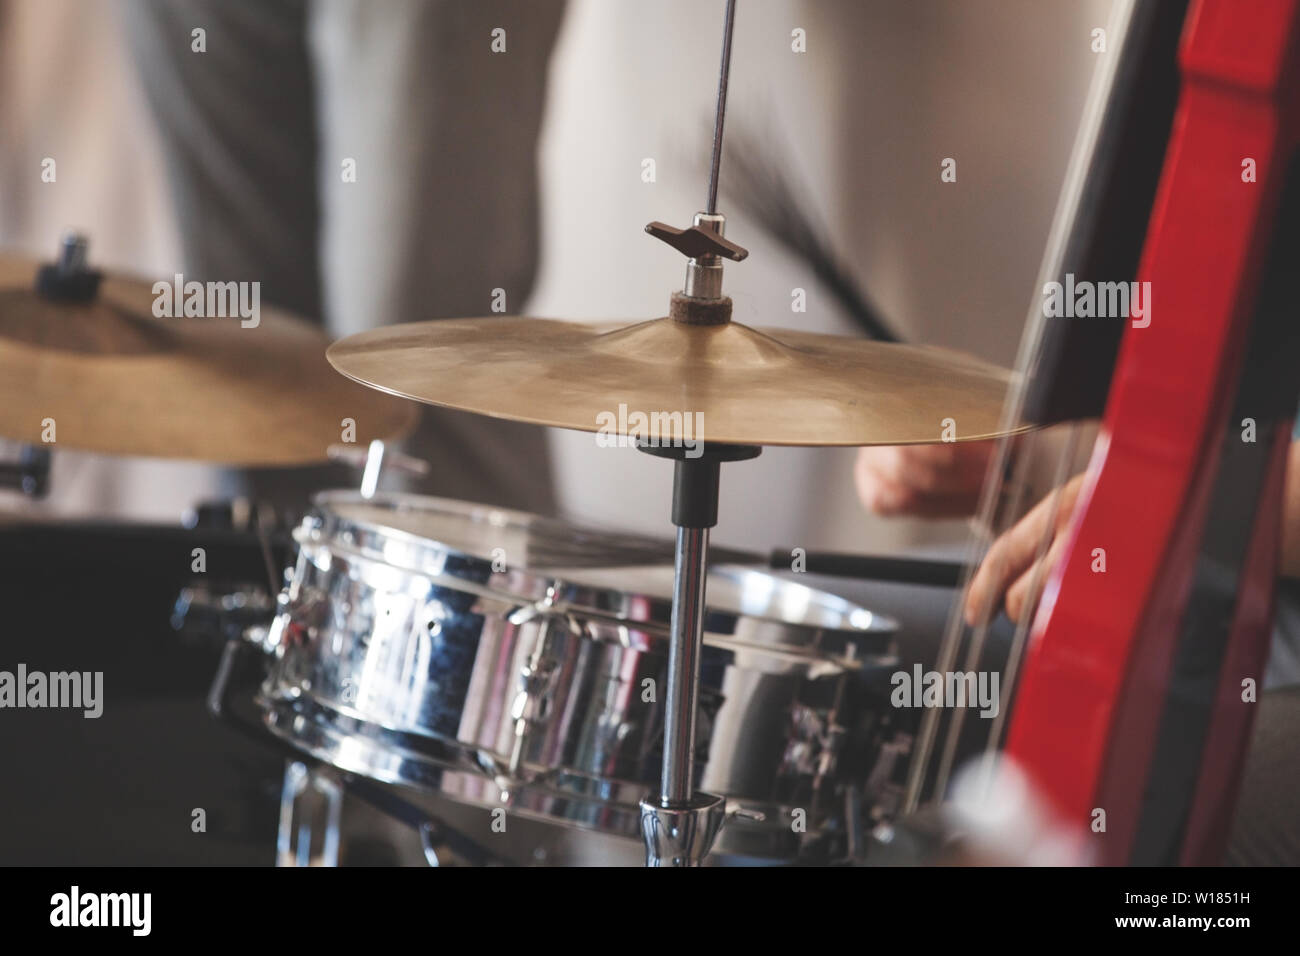 Live music background, drum set and red electric double bass